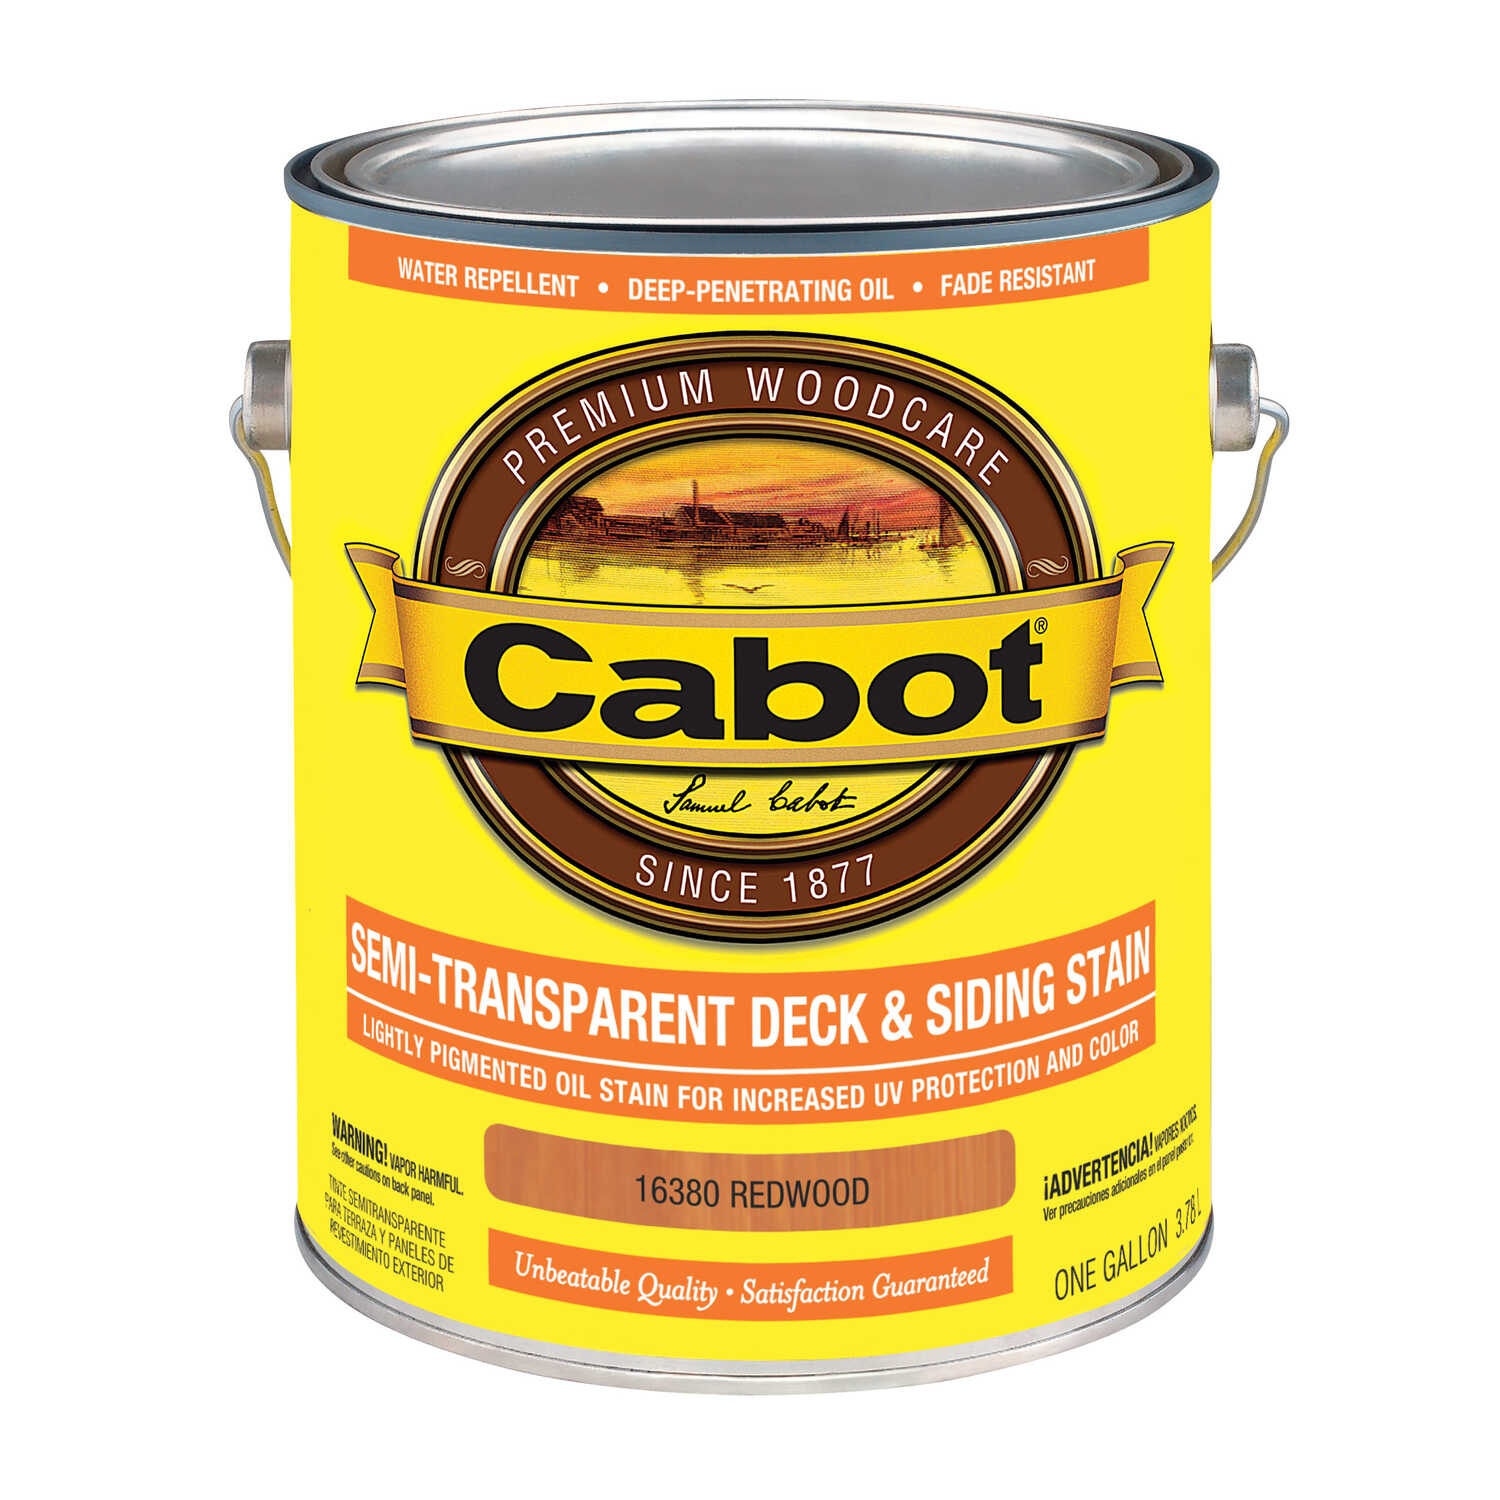 Cabot  Semi-Transparent Deck & Siding Stain  Semi-Transparent  Redwood  Oil-Based  Natural Oil/Water